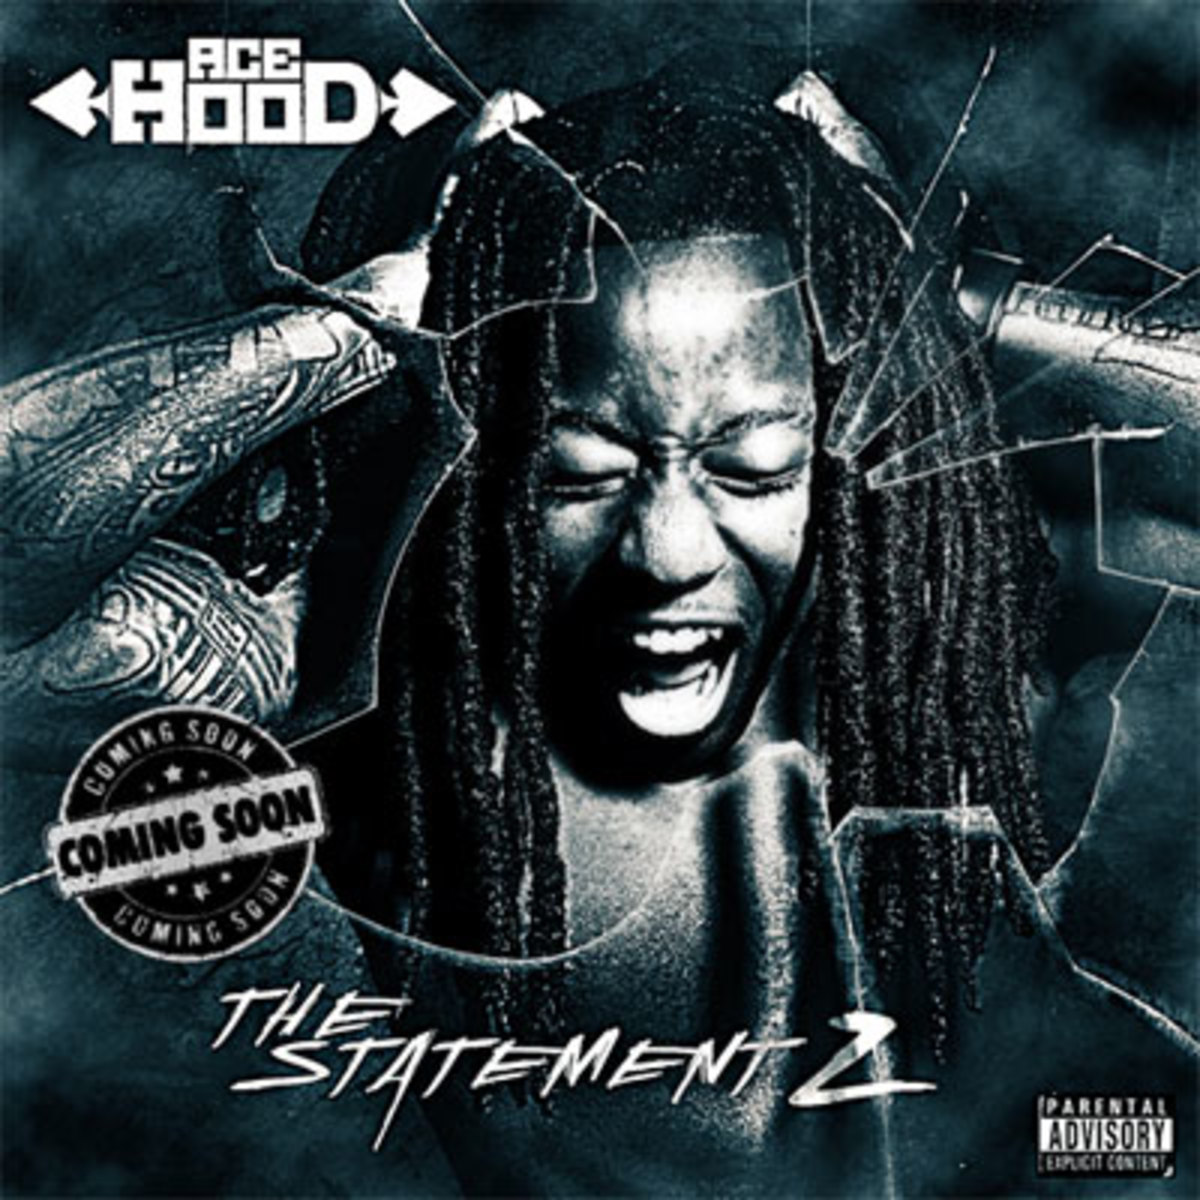 acehood-thestatement2.jpg